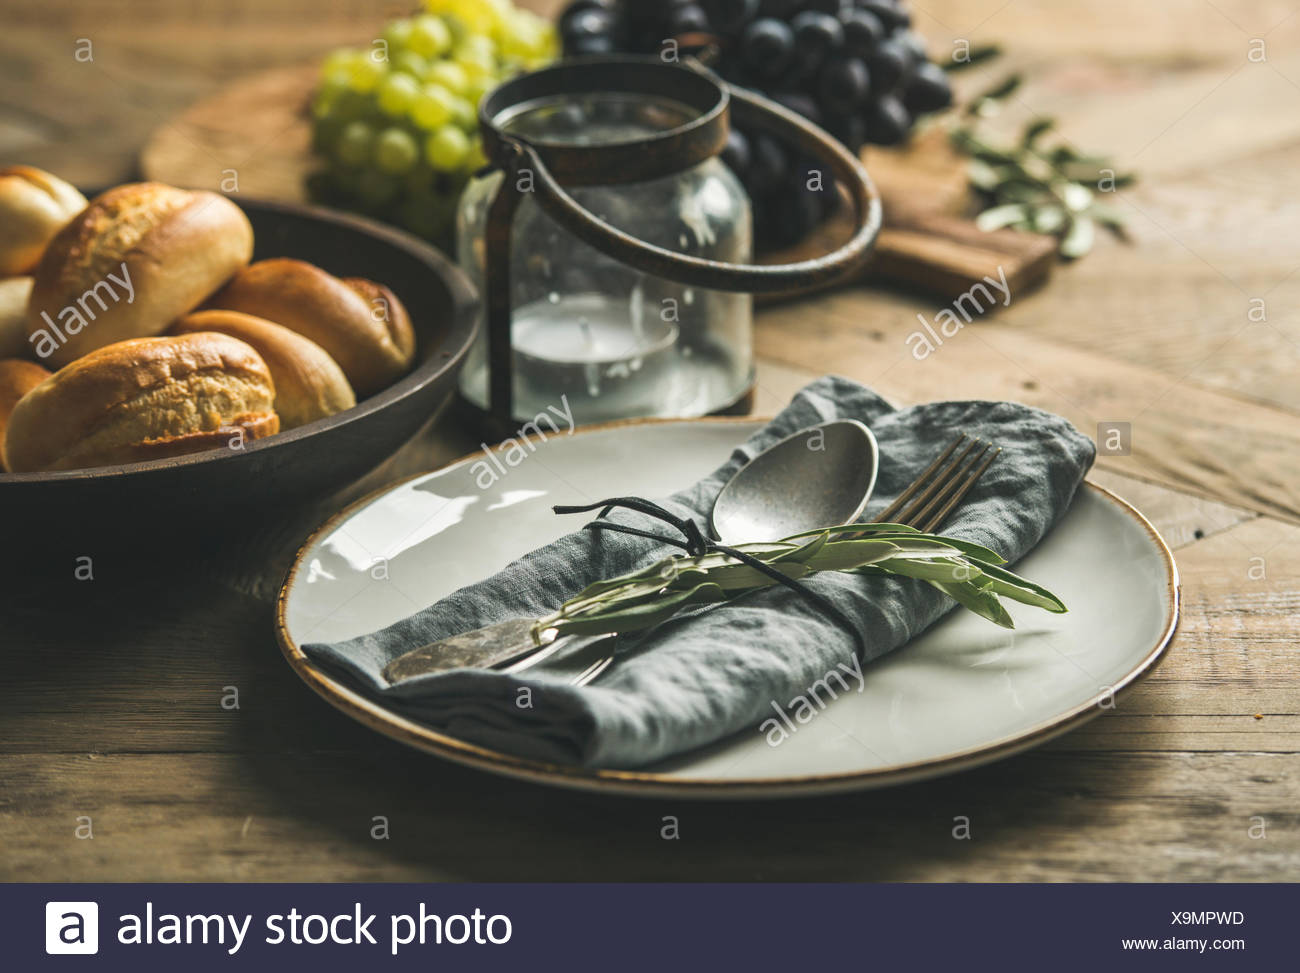 Fall Holiday Table Party Decoration Setting Plate With Linen Napkin Fork Spoon Candle Holder Fresh Grapes On Board Bread Buns Olive Tree Branch Stock Photo Alamy